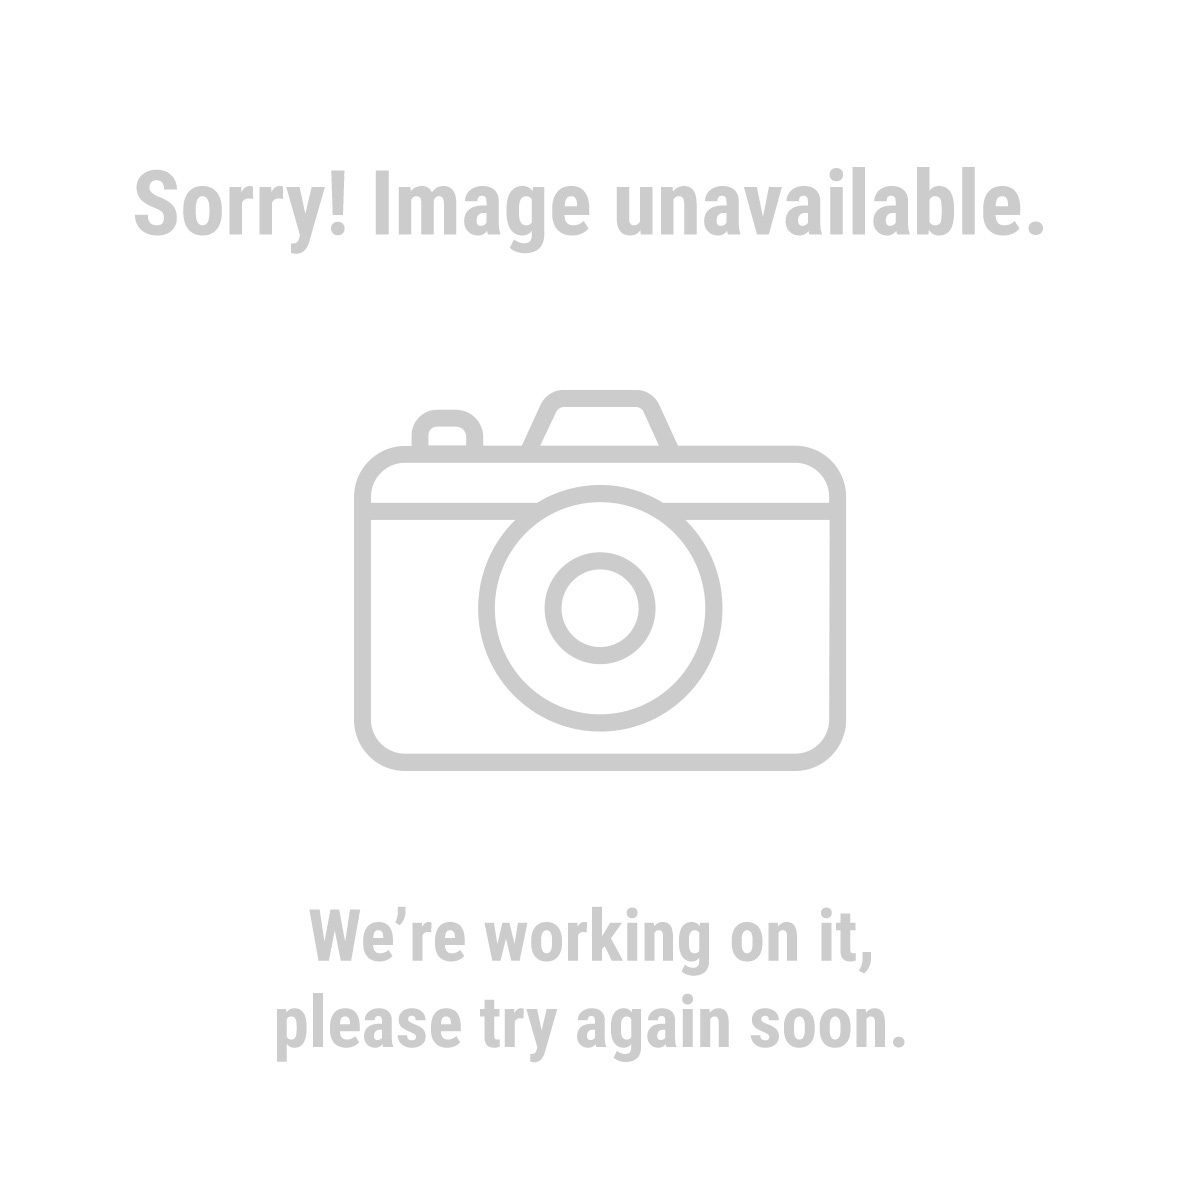 "Chicago Electric Welding 69529 0.023"" ER70S-6 Carbon Steel Welding Wire, 10 Lb. Roll"